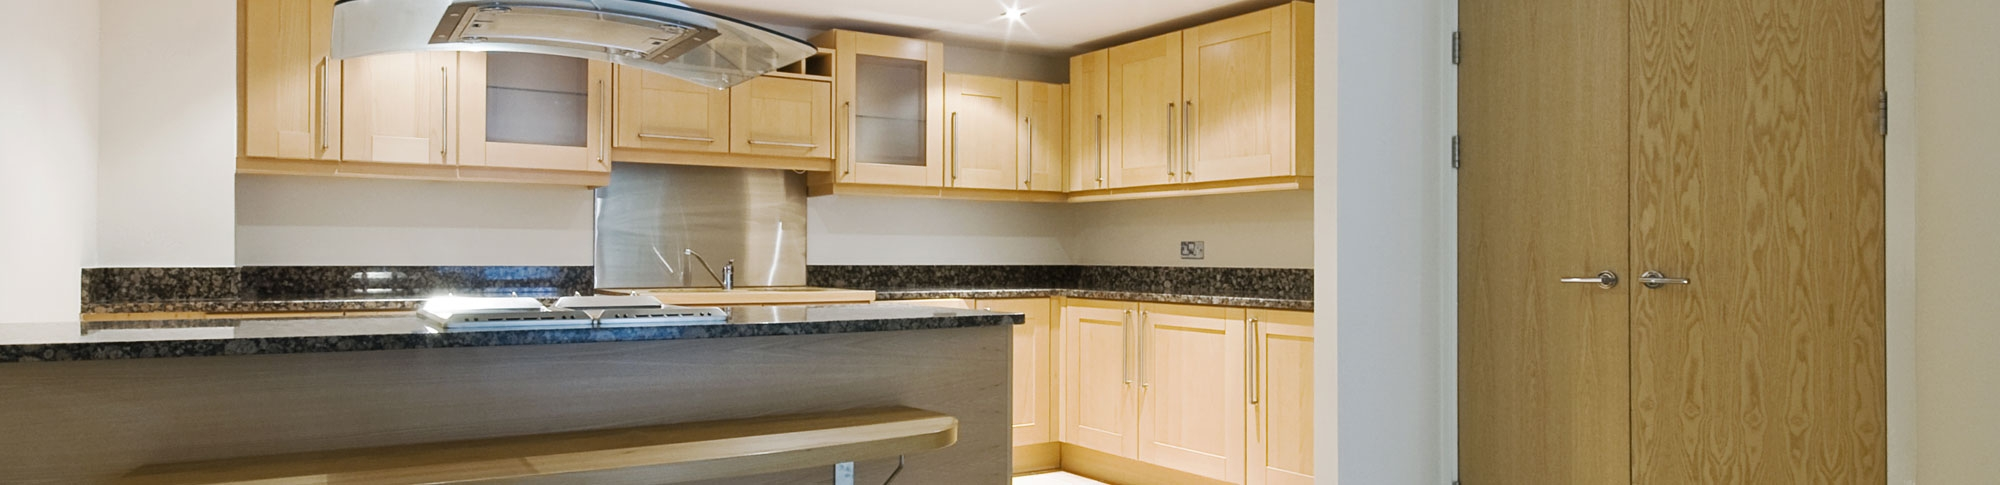 Greenlam Laminates For Kitchen Cabinets